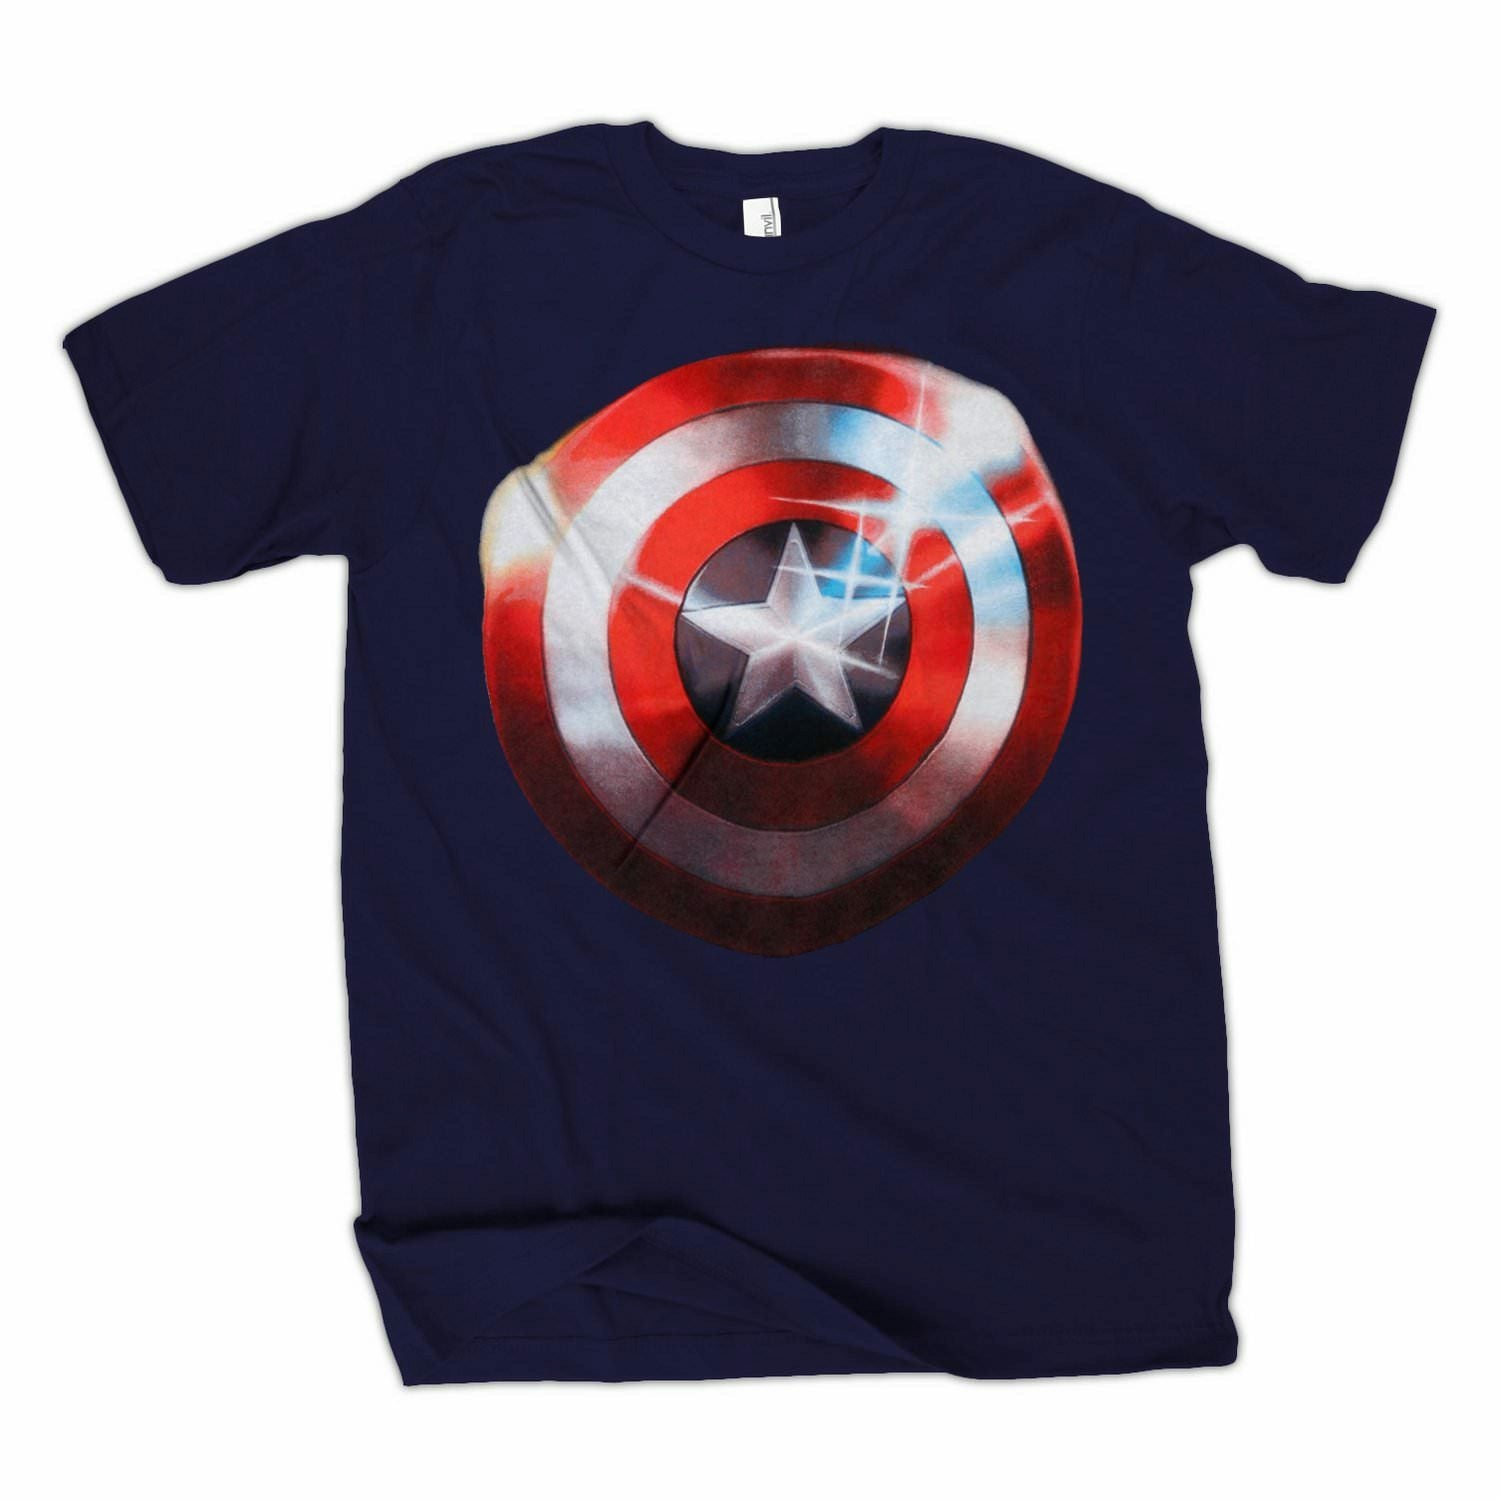 The Avengers Movie Captain America Polished Shield Logo Navy T-Shirt